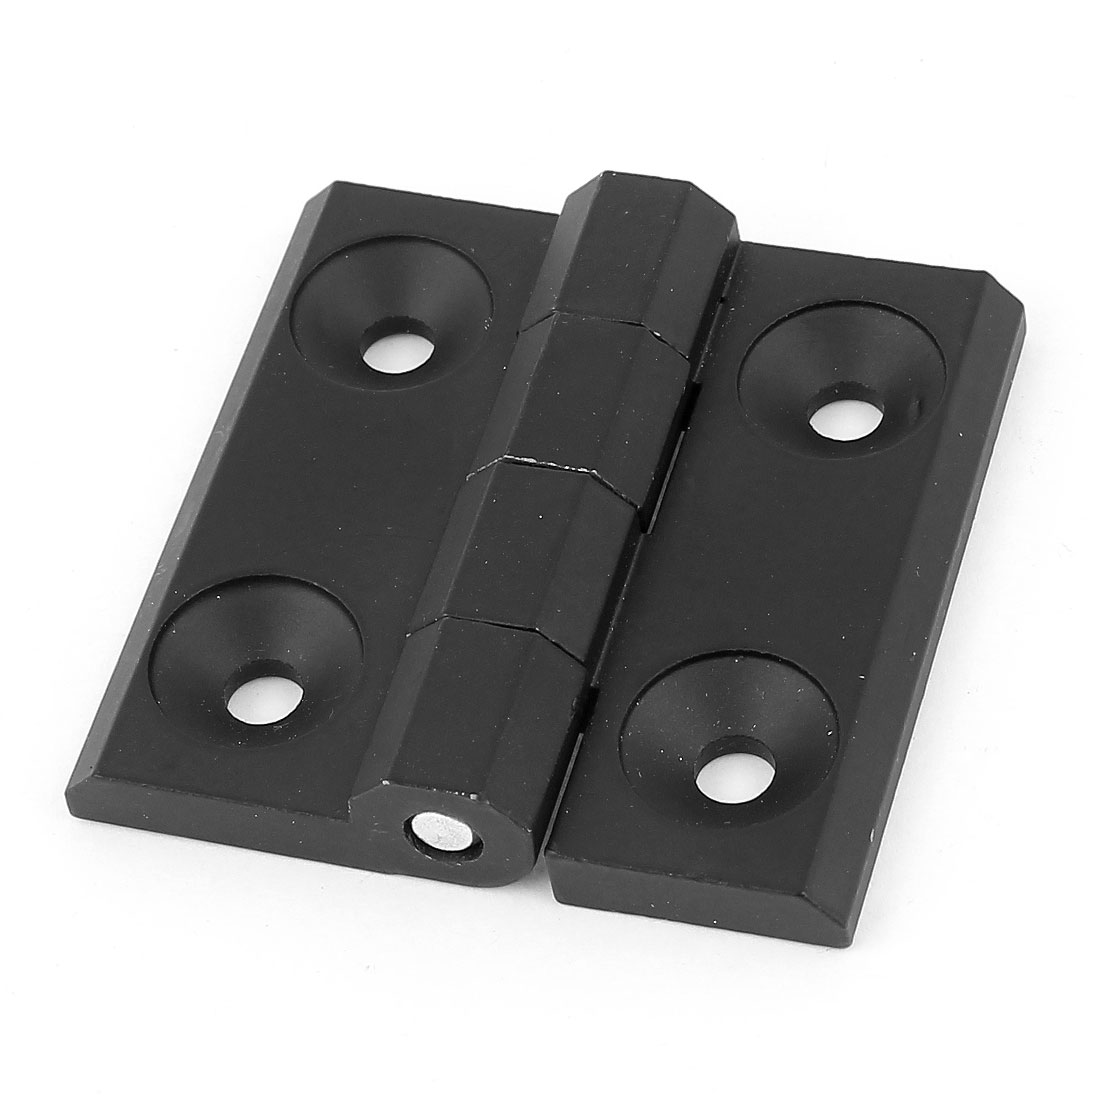 Charming UXCELL 60Mm X 60Mm Square Black Aluminum Window Cabinets Door Hinges(China)